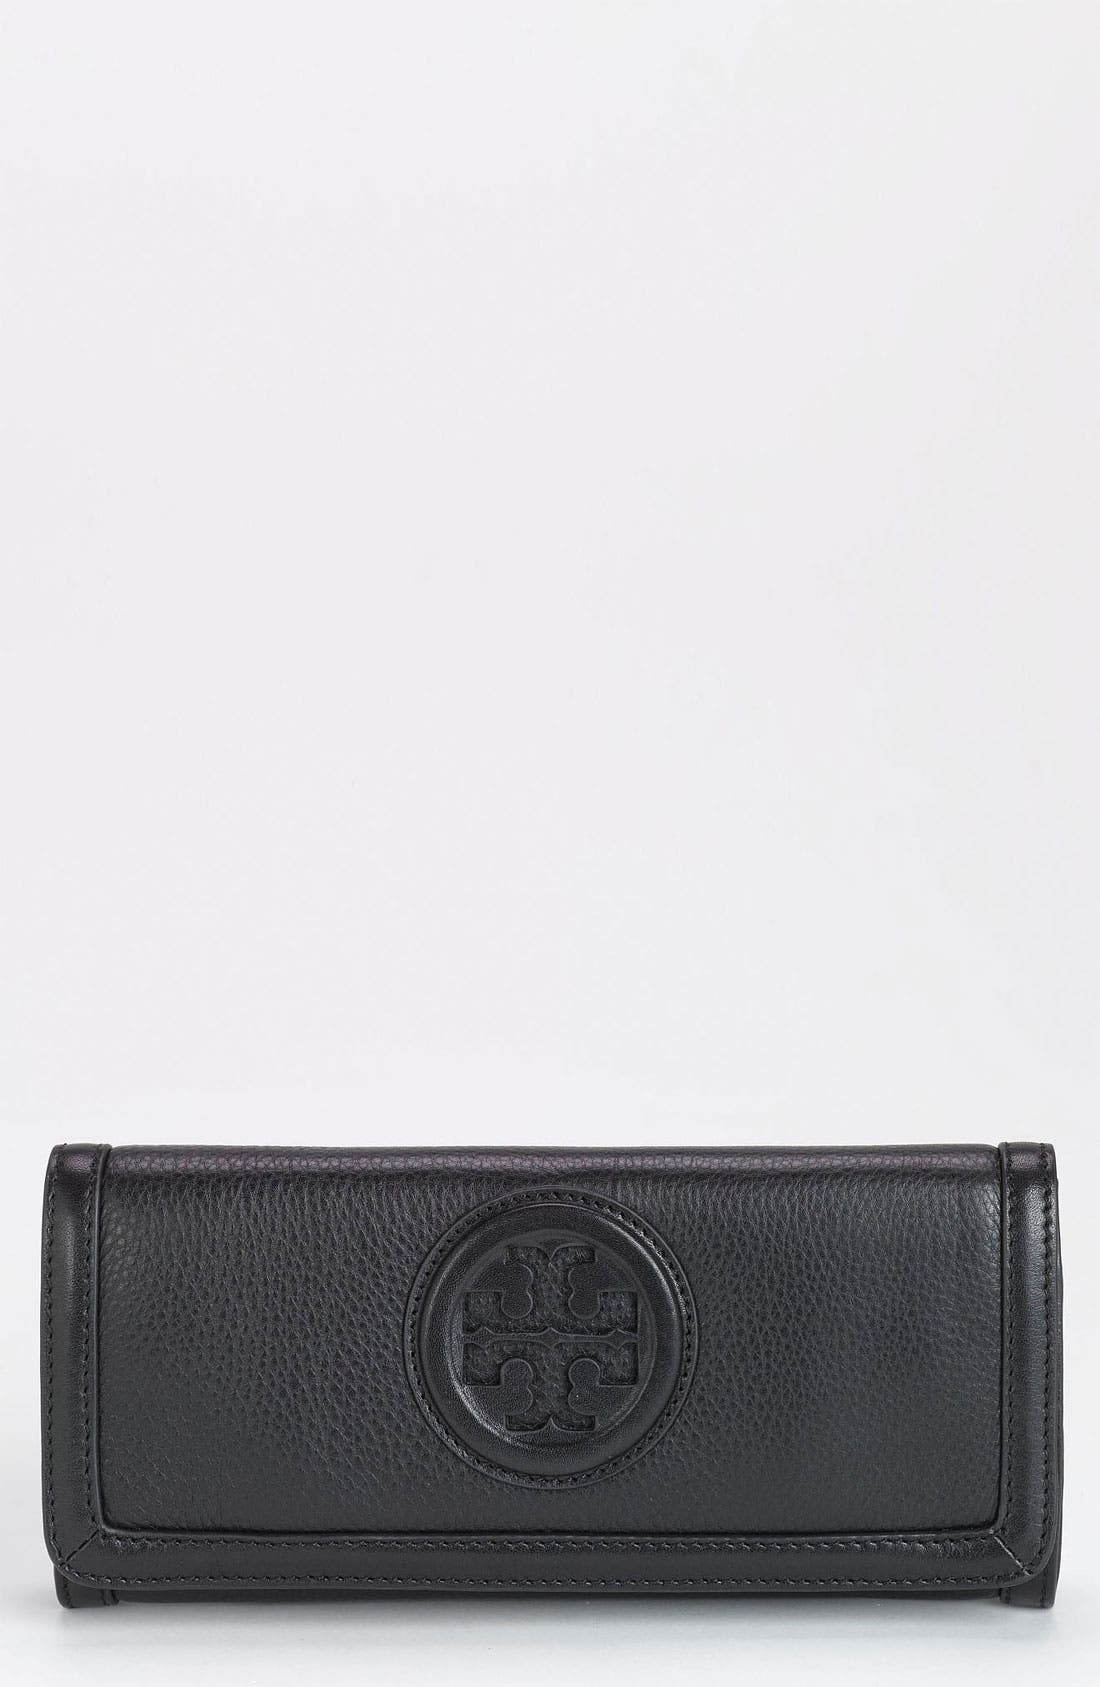 Alternate Image 1 Selected - Tory Burch 'Hannah' Clutch